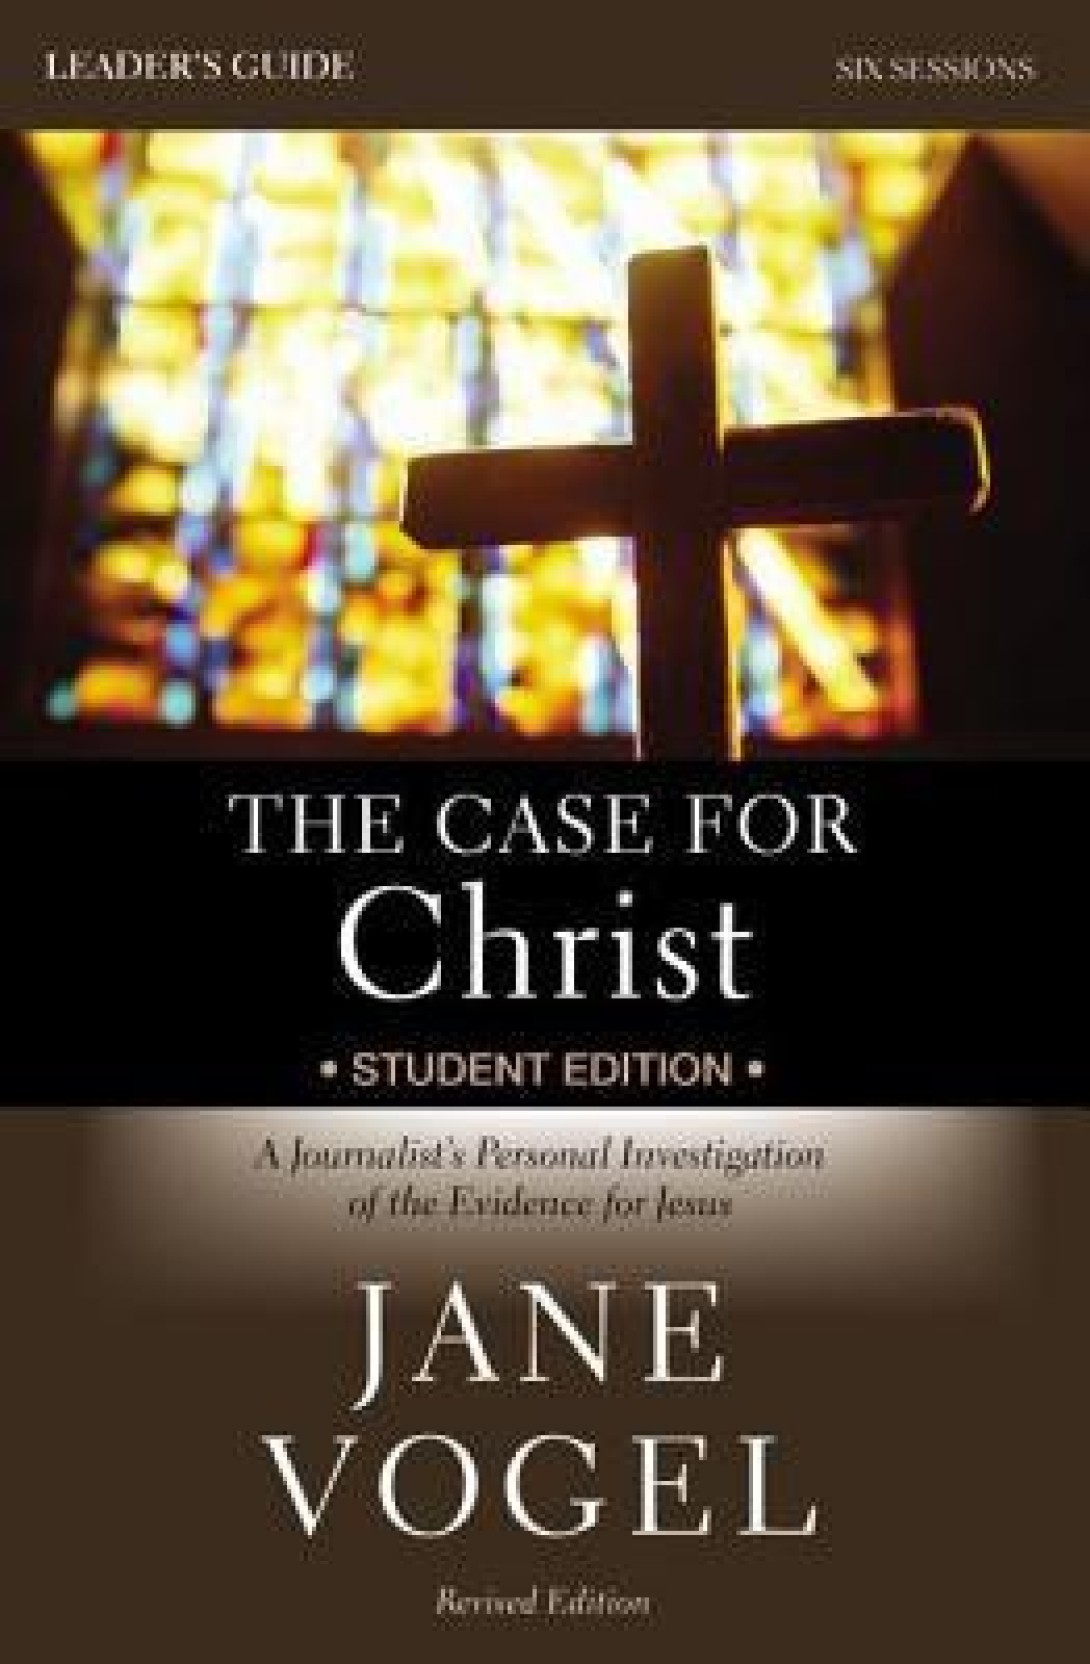 ... Case for Faith Revised Student Edition Leader's Guide. ON OFFER